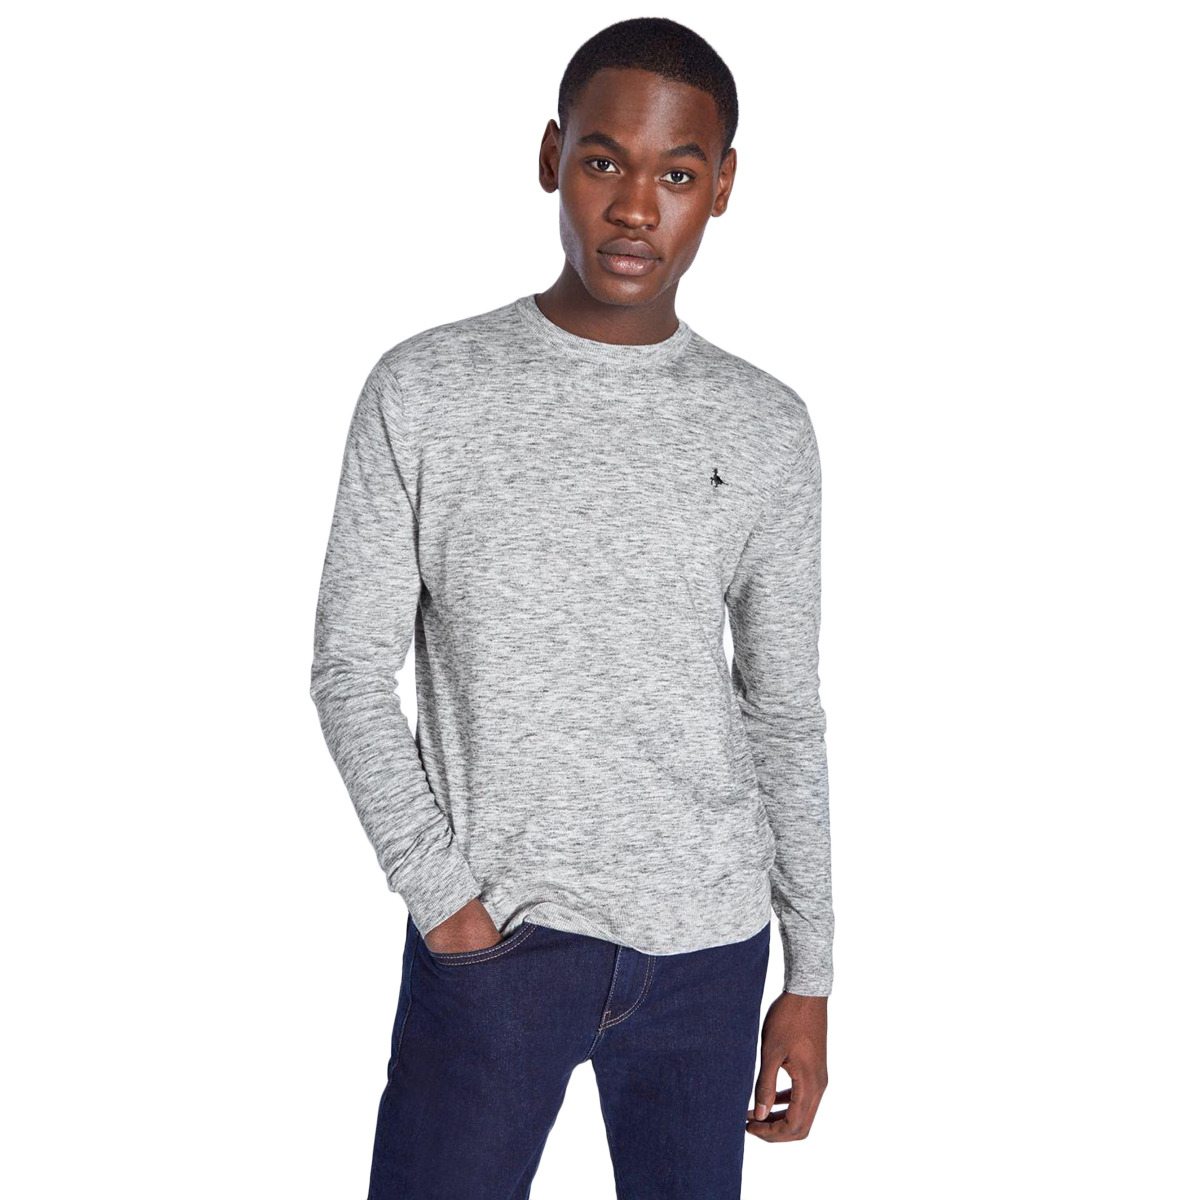 Jack Wills Men's Buscot Space Dye Sweater - Black, L